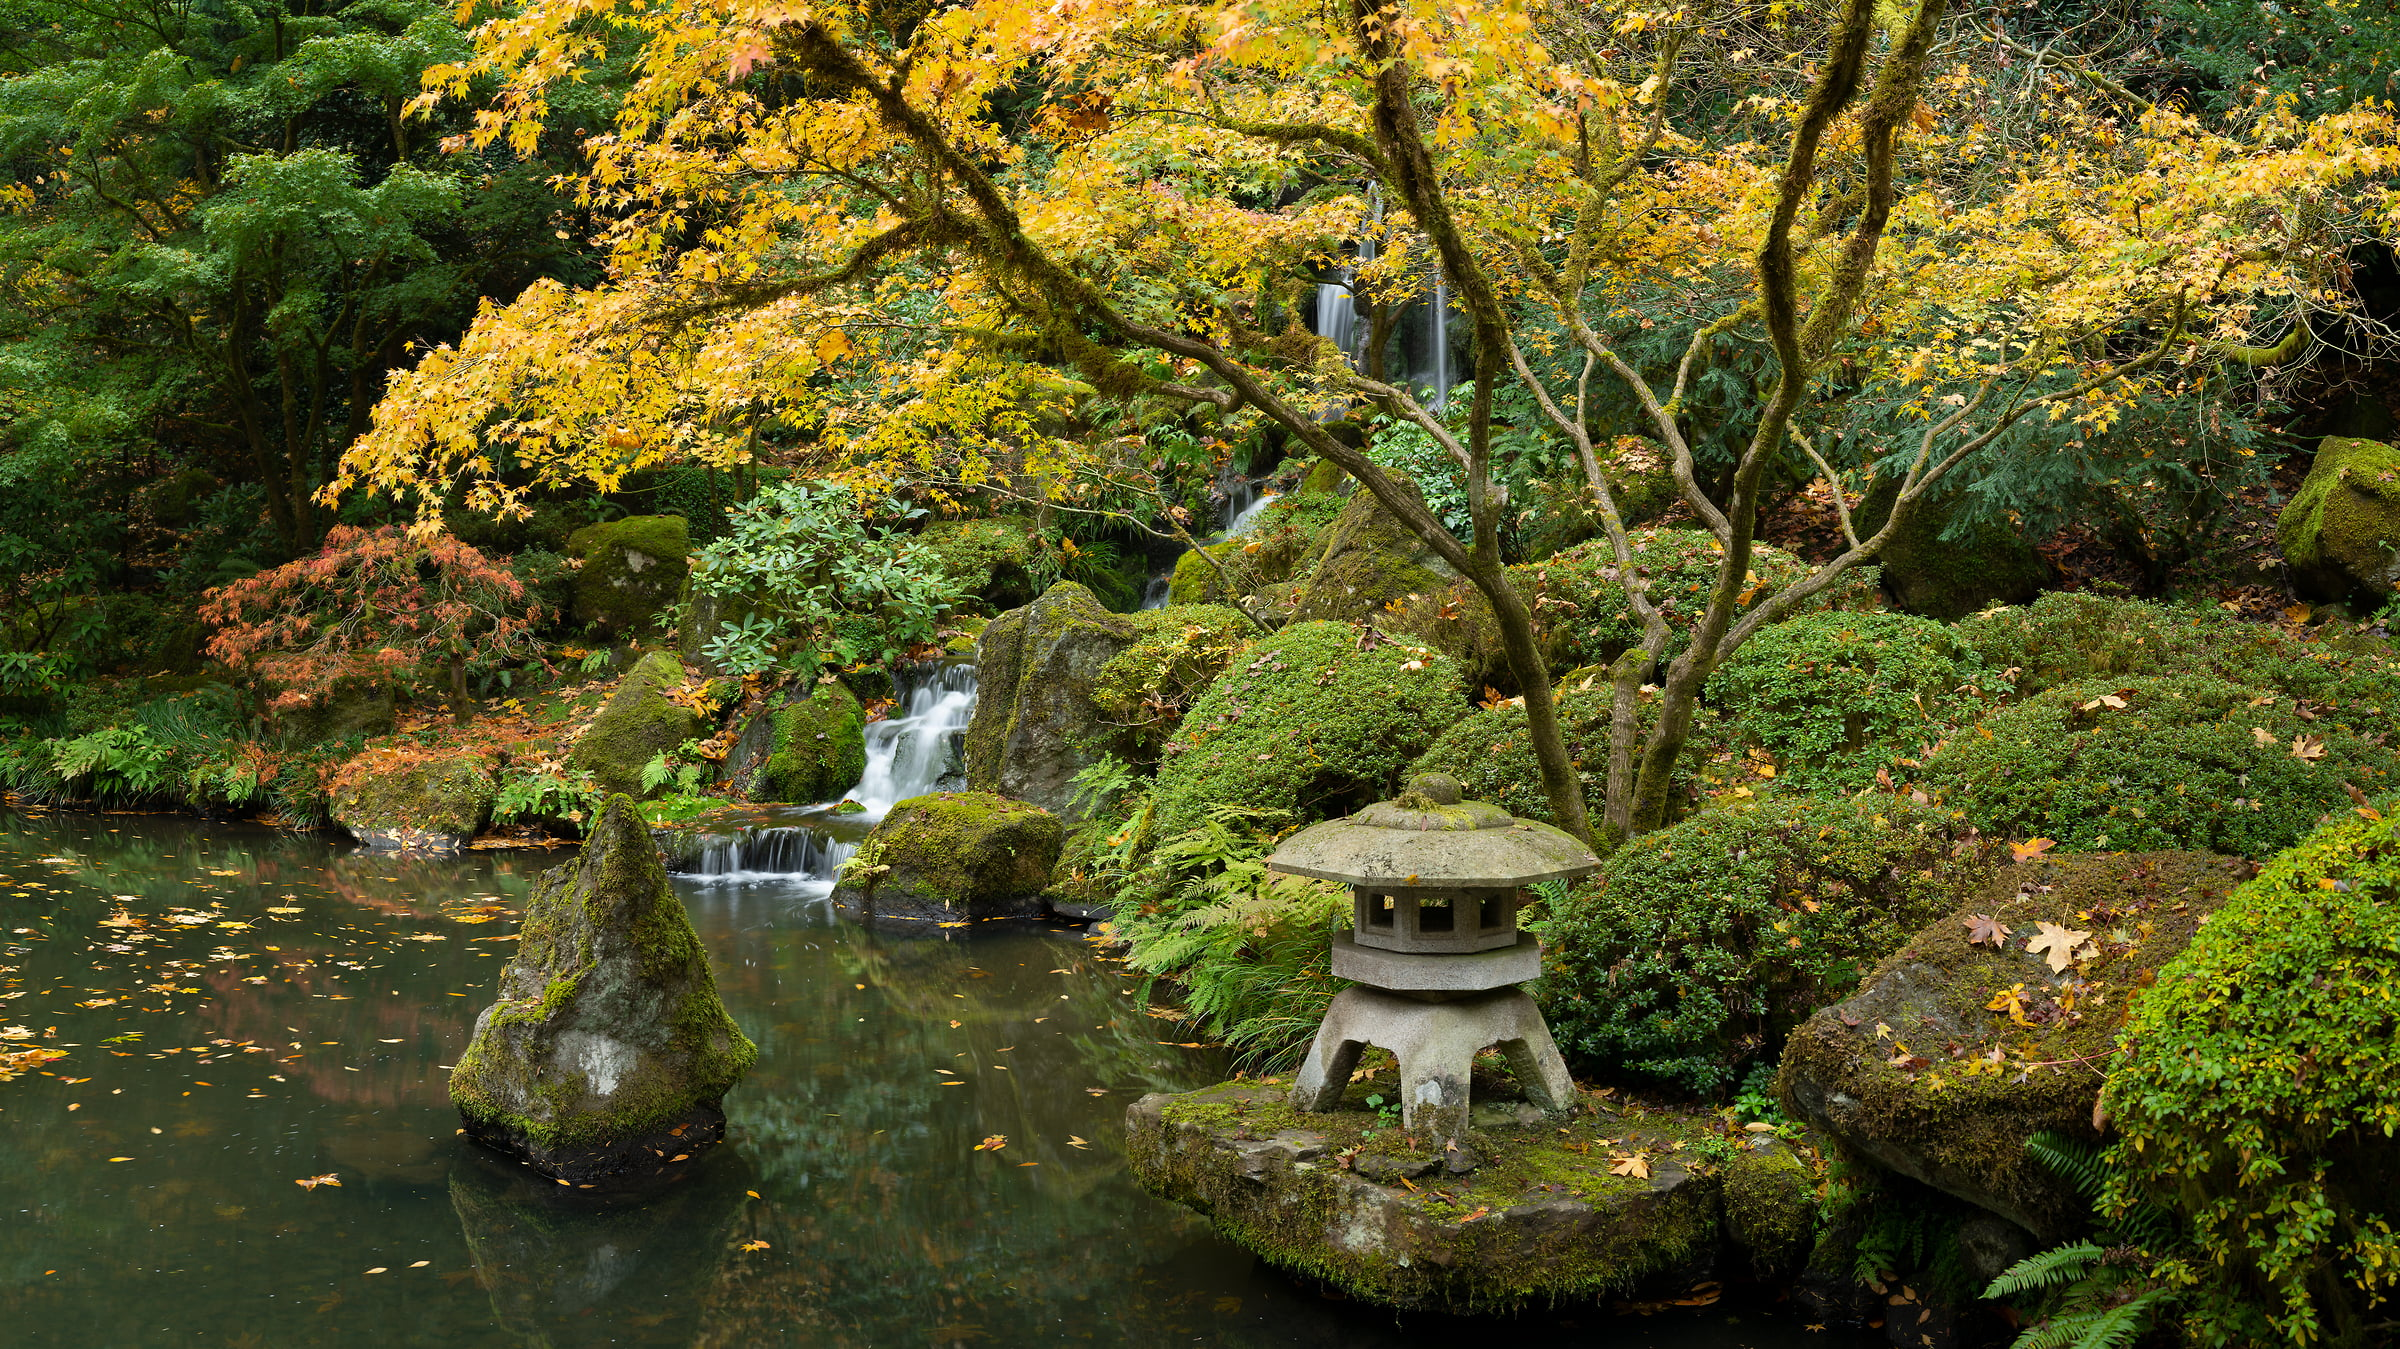 363 megapixels! A very high resolution, large-format VAST photo print of a zen Japanese garden; photograph created by Greg Probst in Portland Japanese Garden, Portland, Oregon